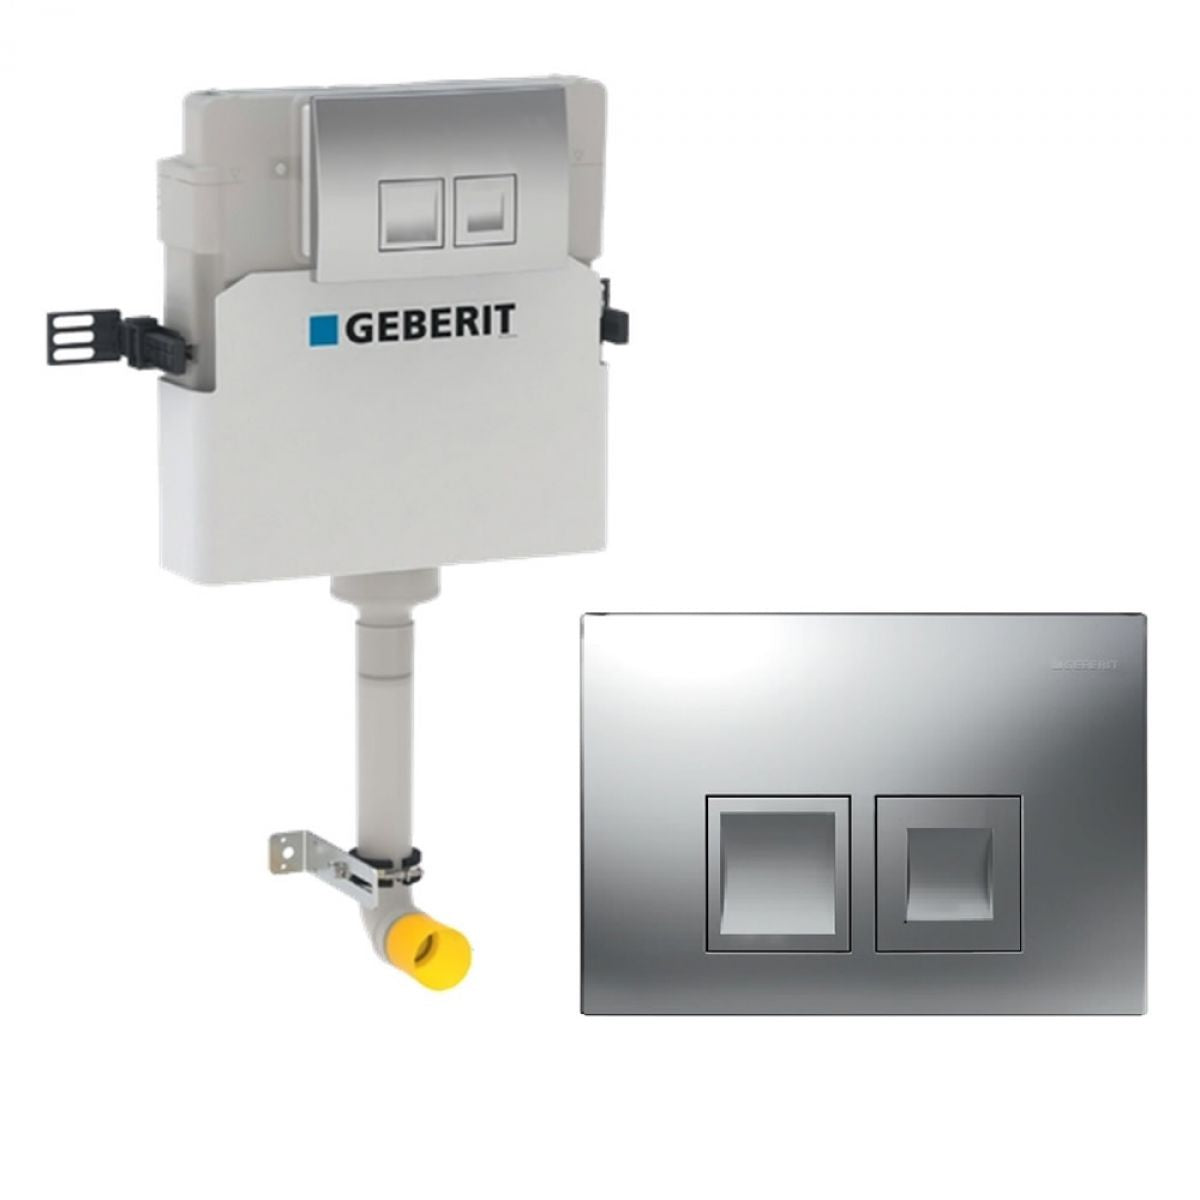 Image of Geberit Duofix Delta 112cm Concealed Cistern with Delta 50 Flush Plate